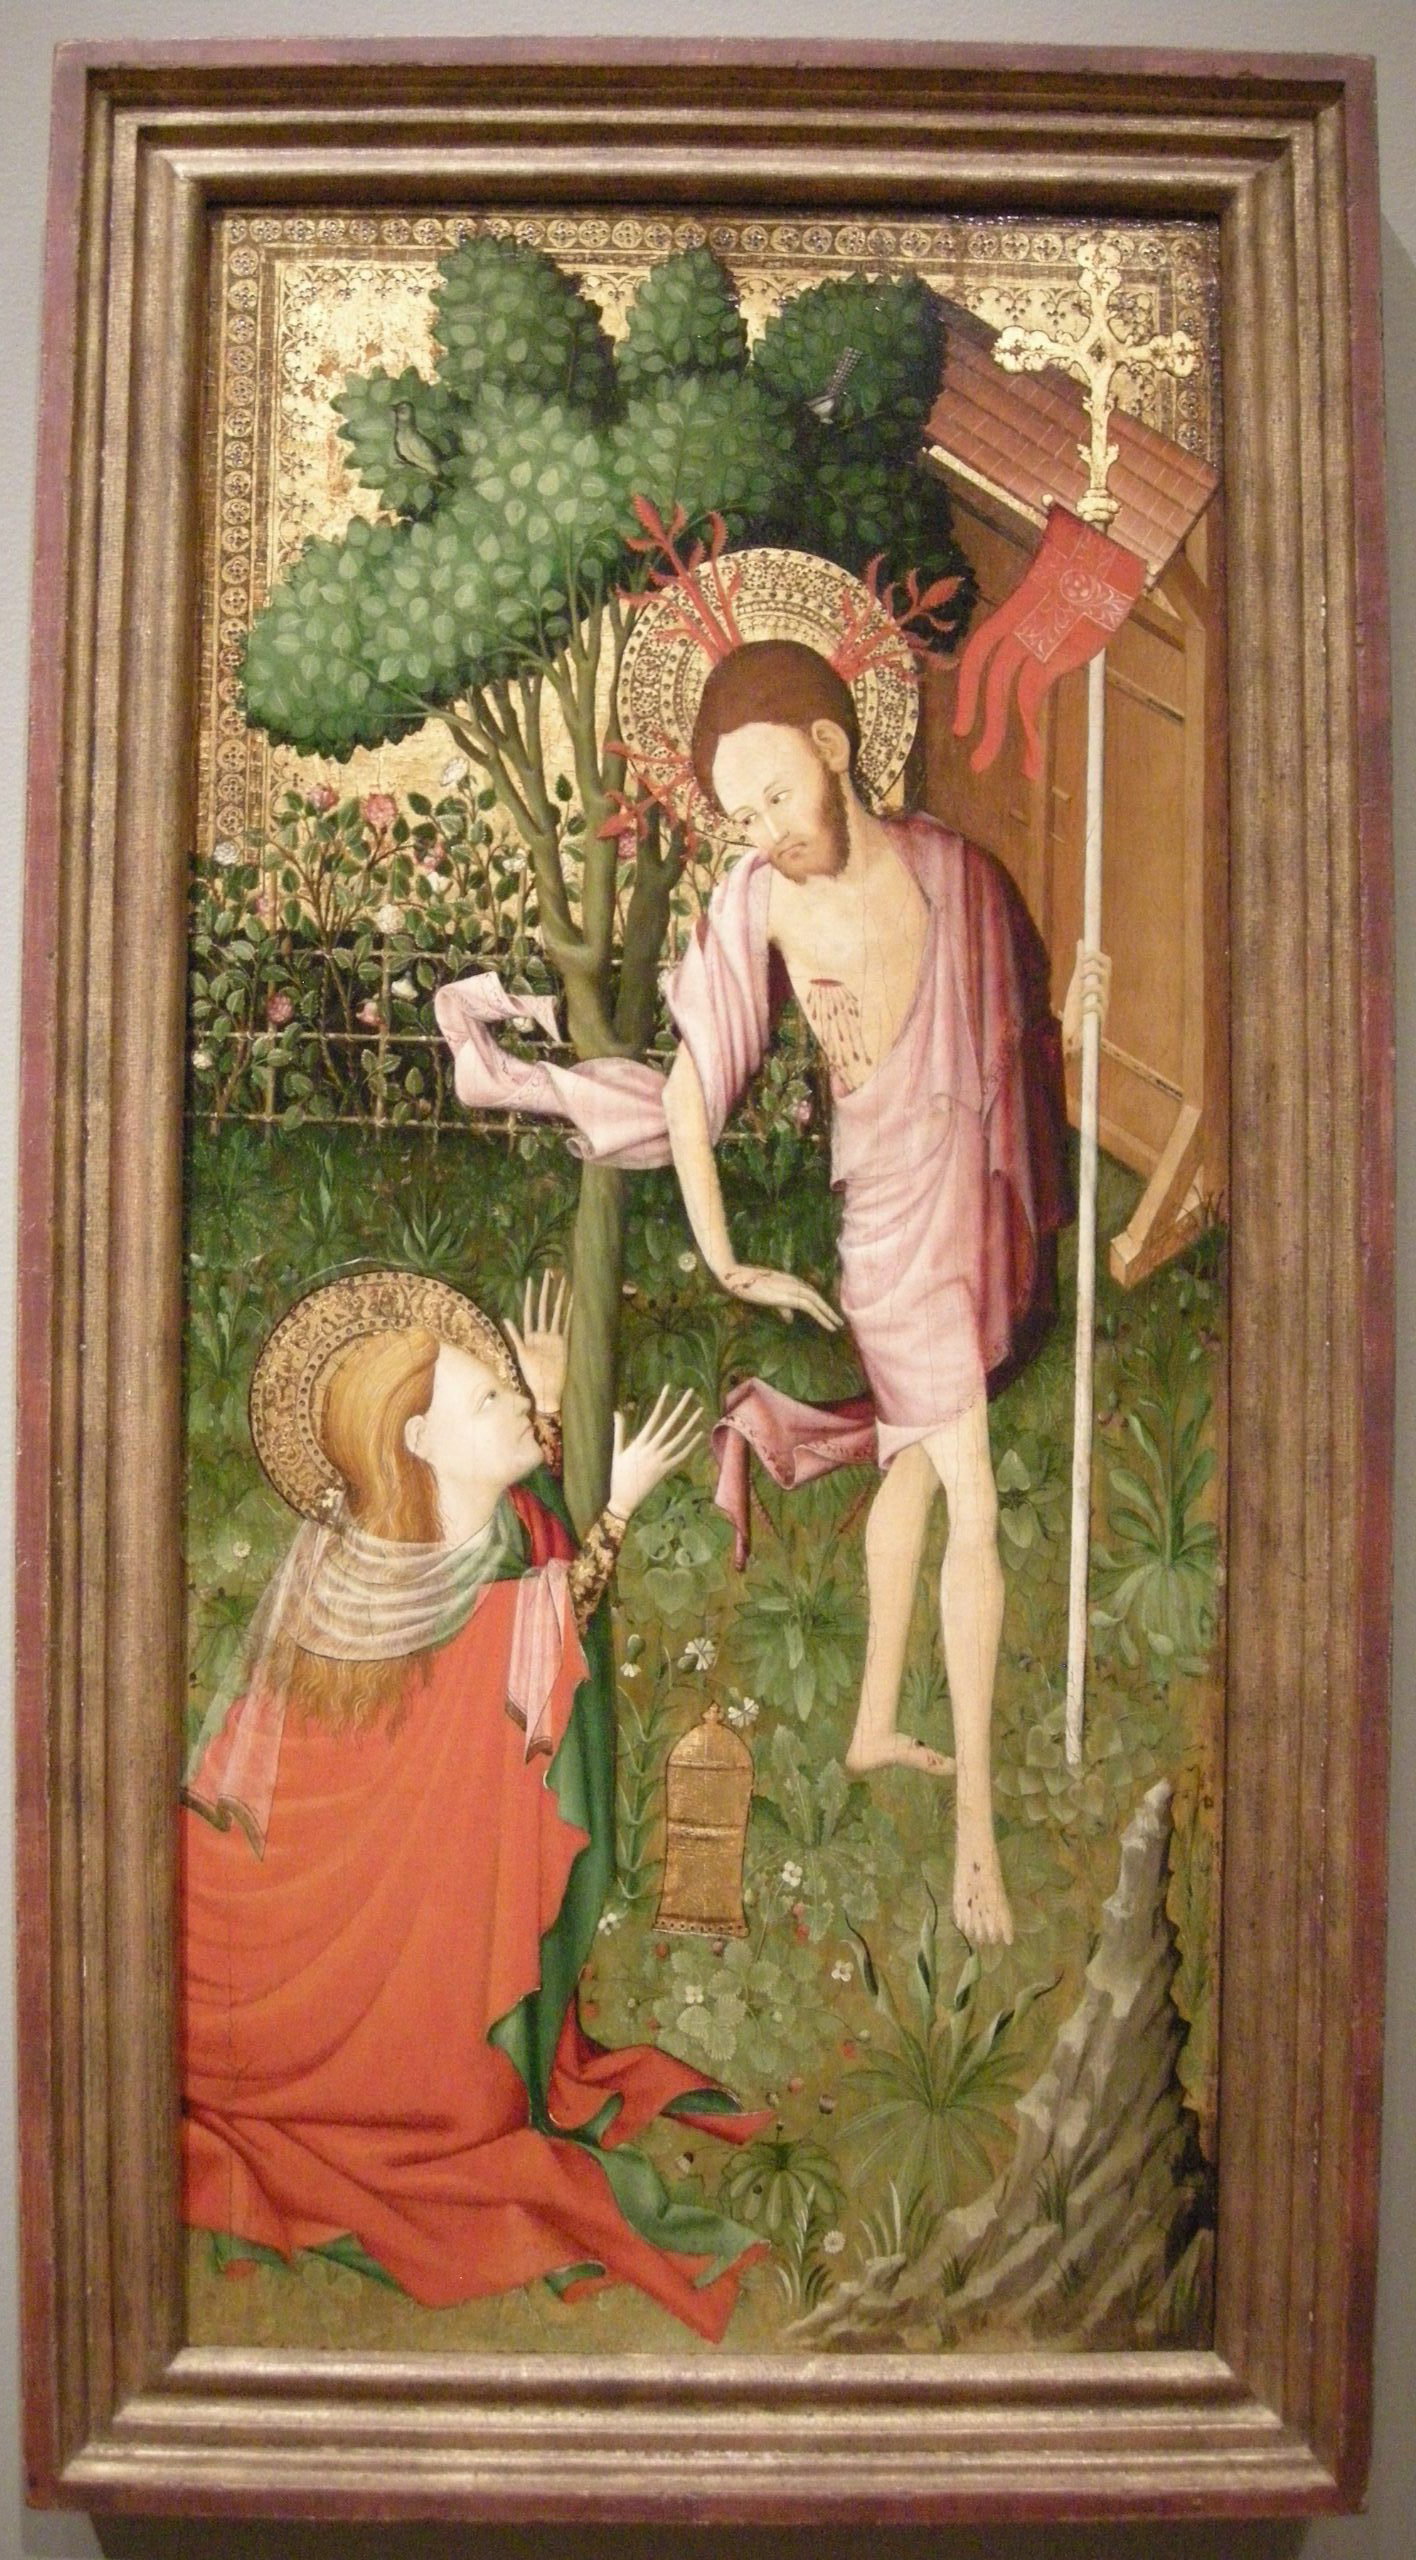 noli me tangere controversy The painting depicts a risen christ following his crucifixion in a ' noli me tangere controversial portrayal of a mathematical, physical and engineering.